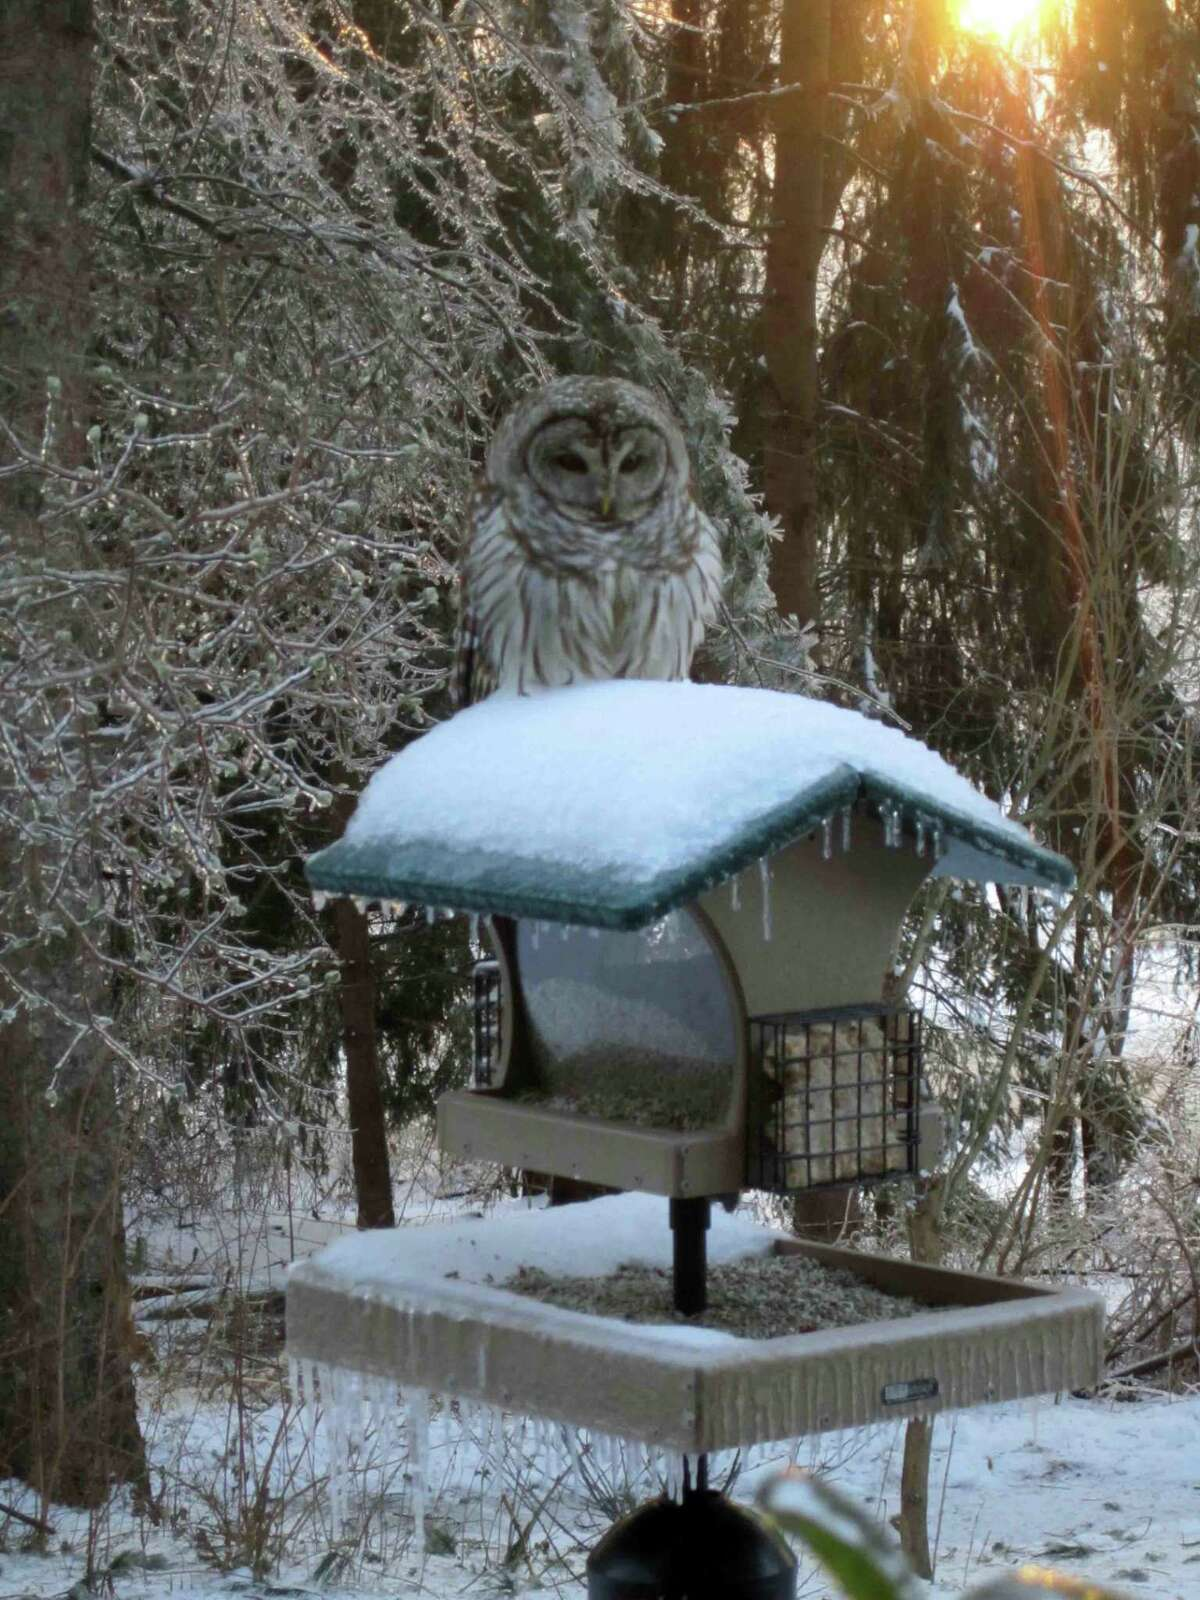 A barred owl seen sitting on a Middletown feeder. Photo submitted by Jim Arrigoni.